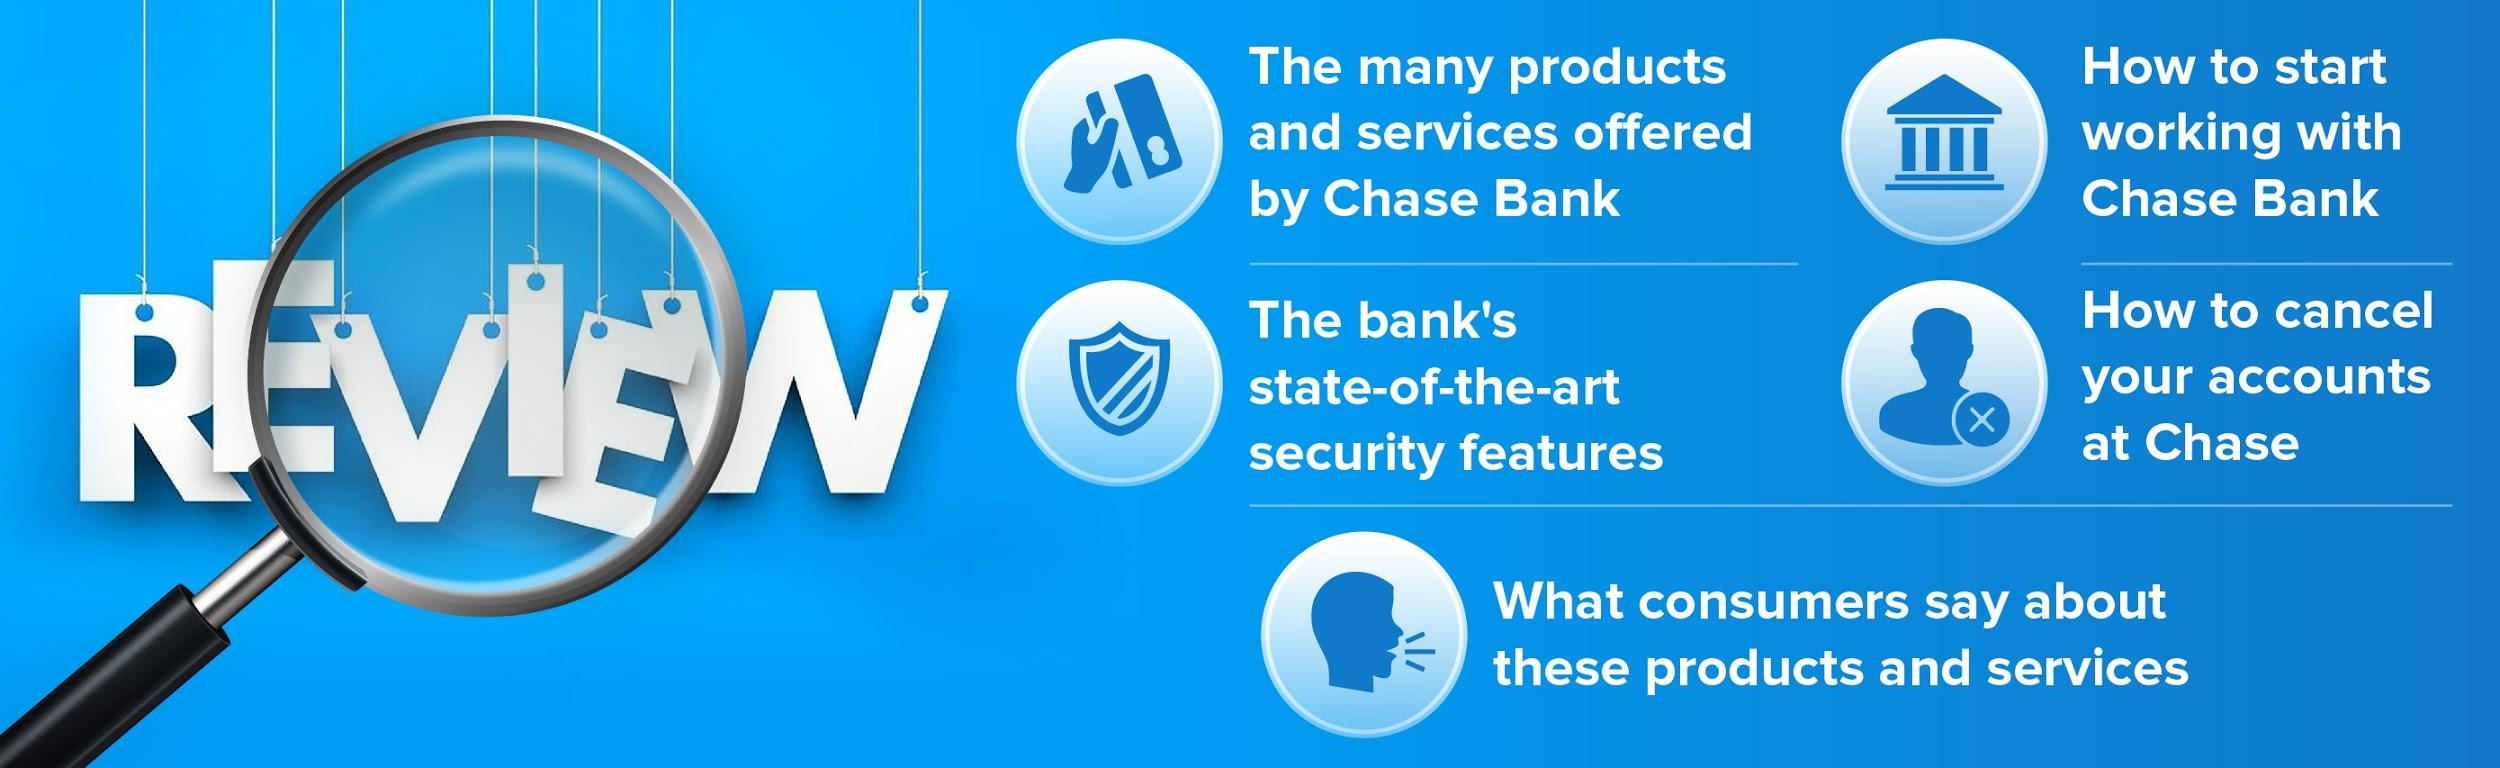 Chase bank review creditloan chase bank highlights 1betcityfo Choice Image